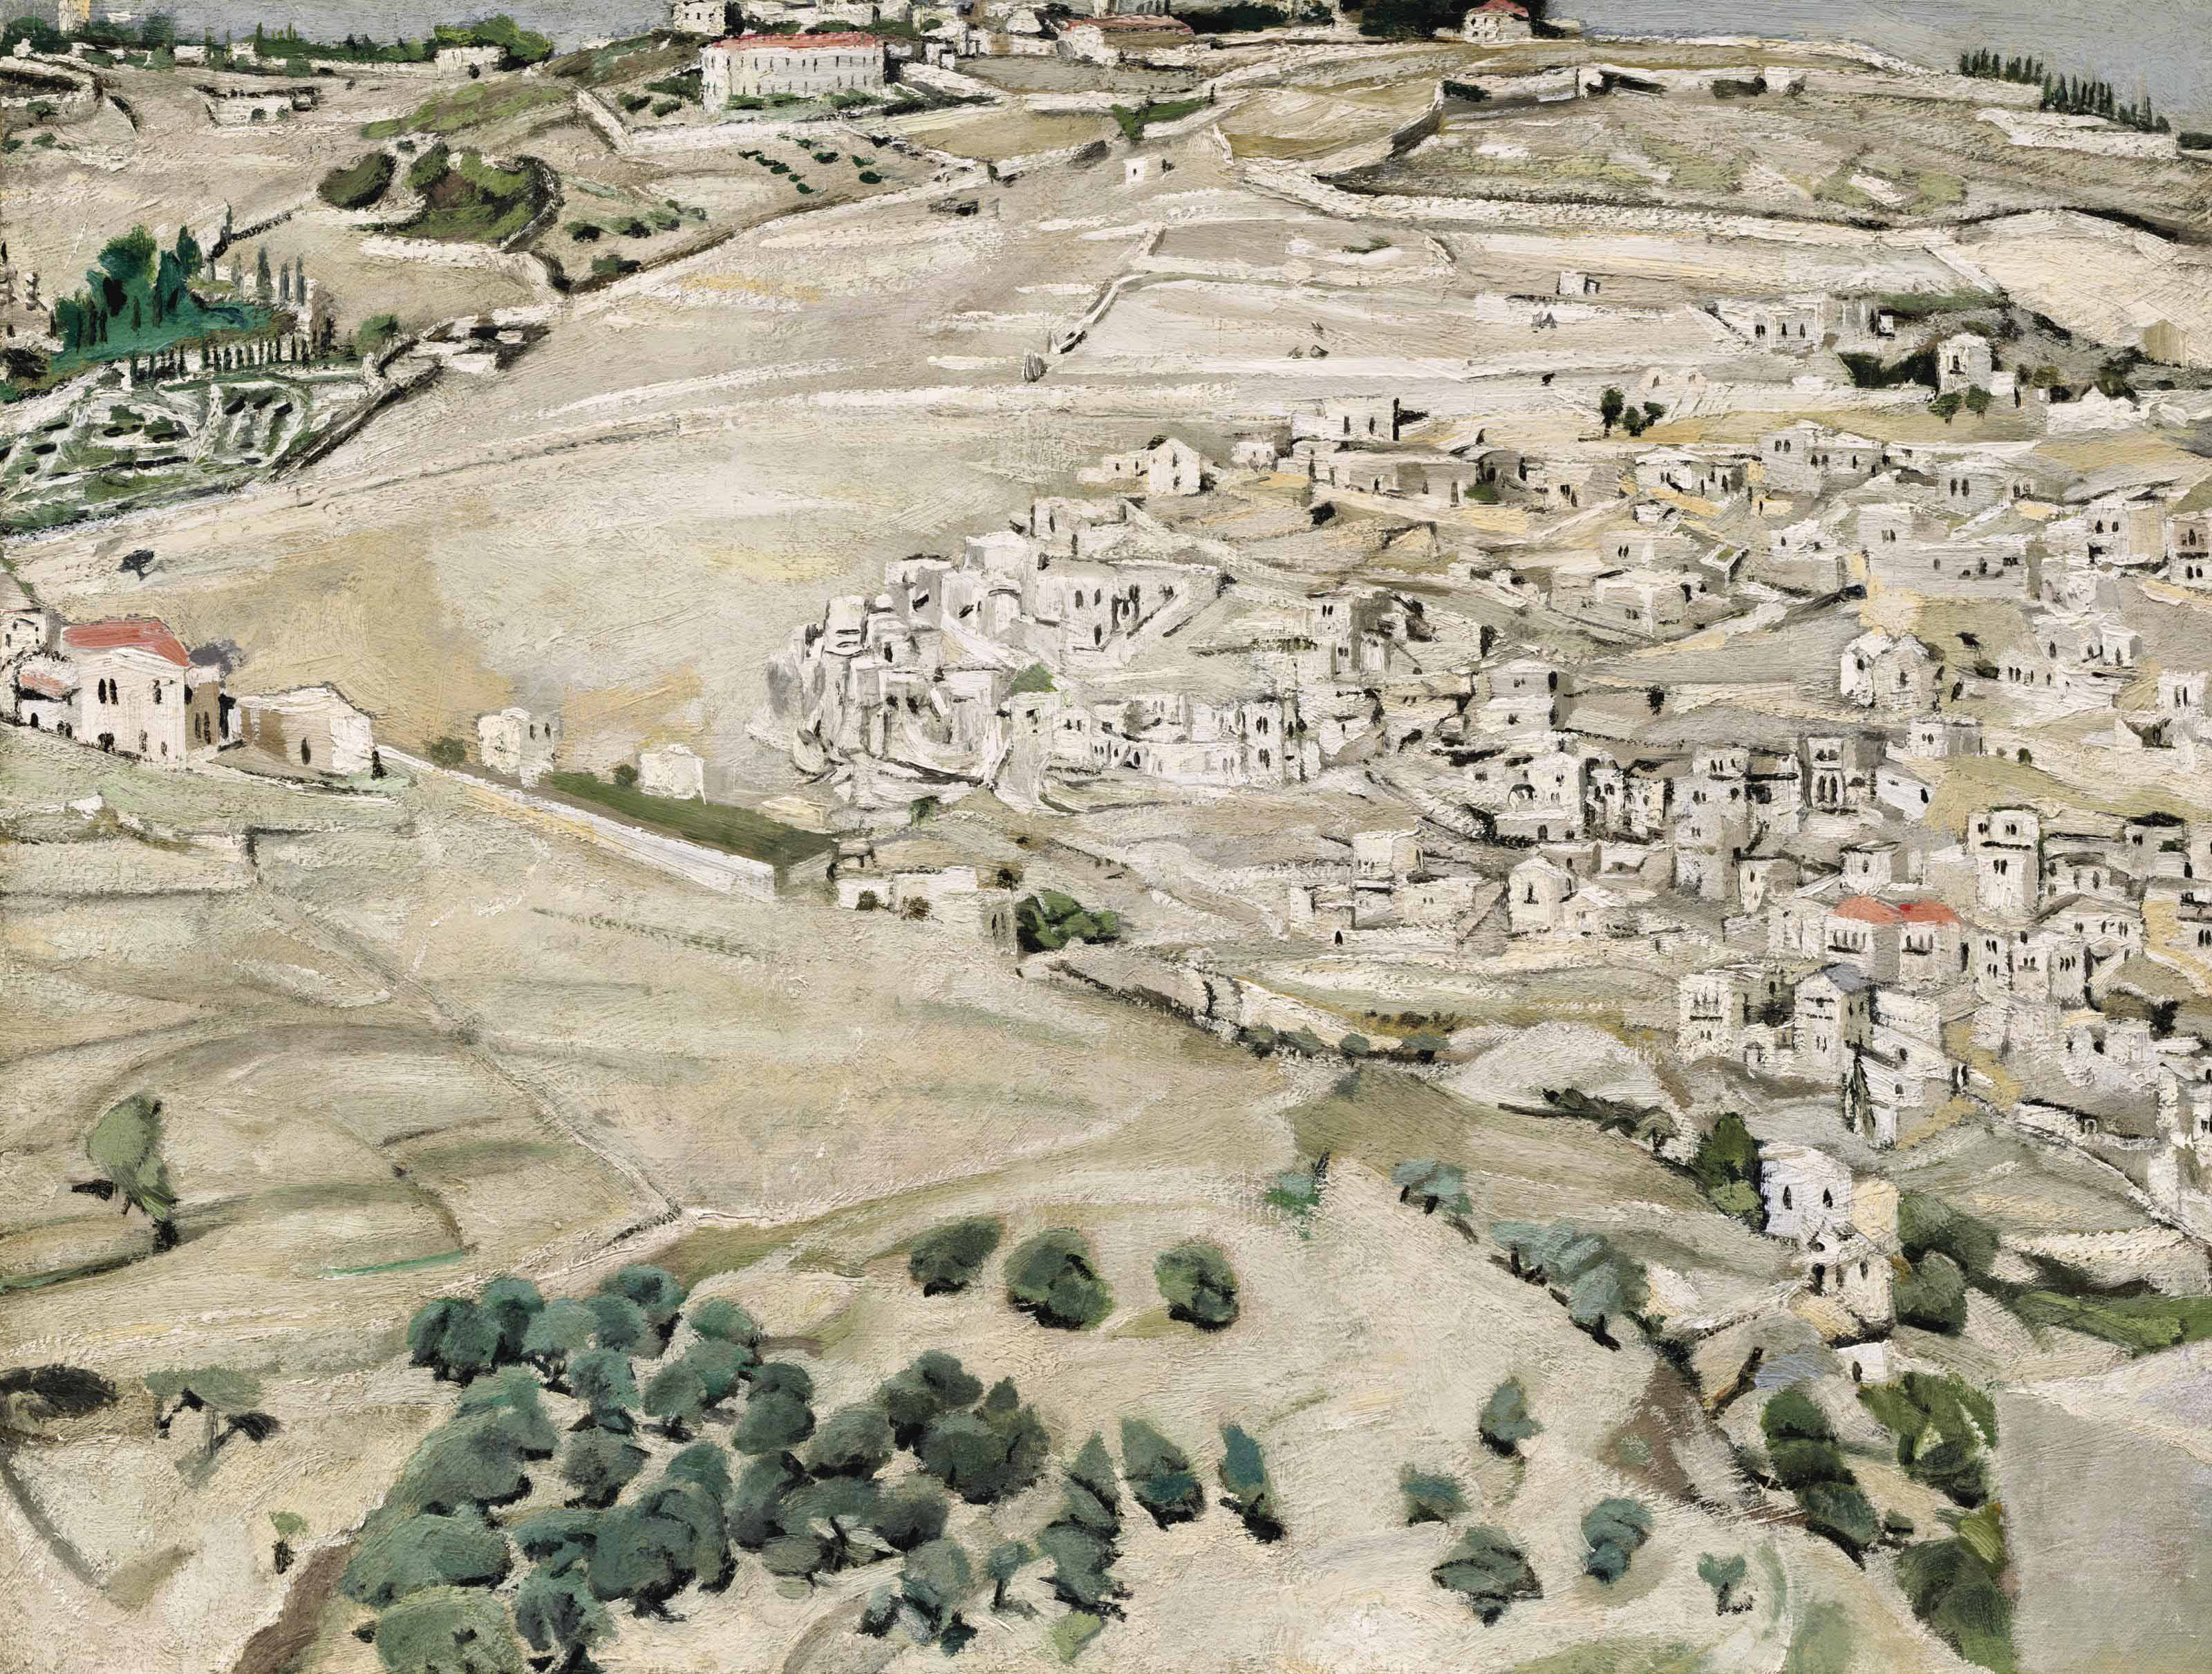 Siloam and the Mount of Olives